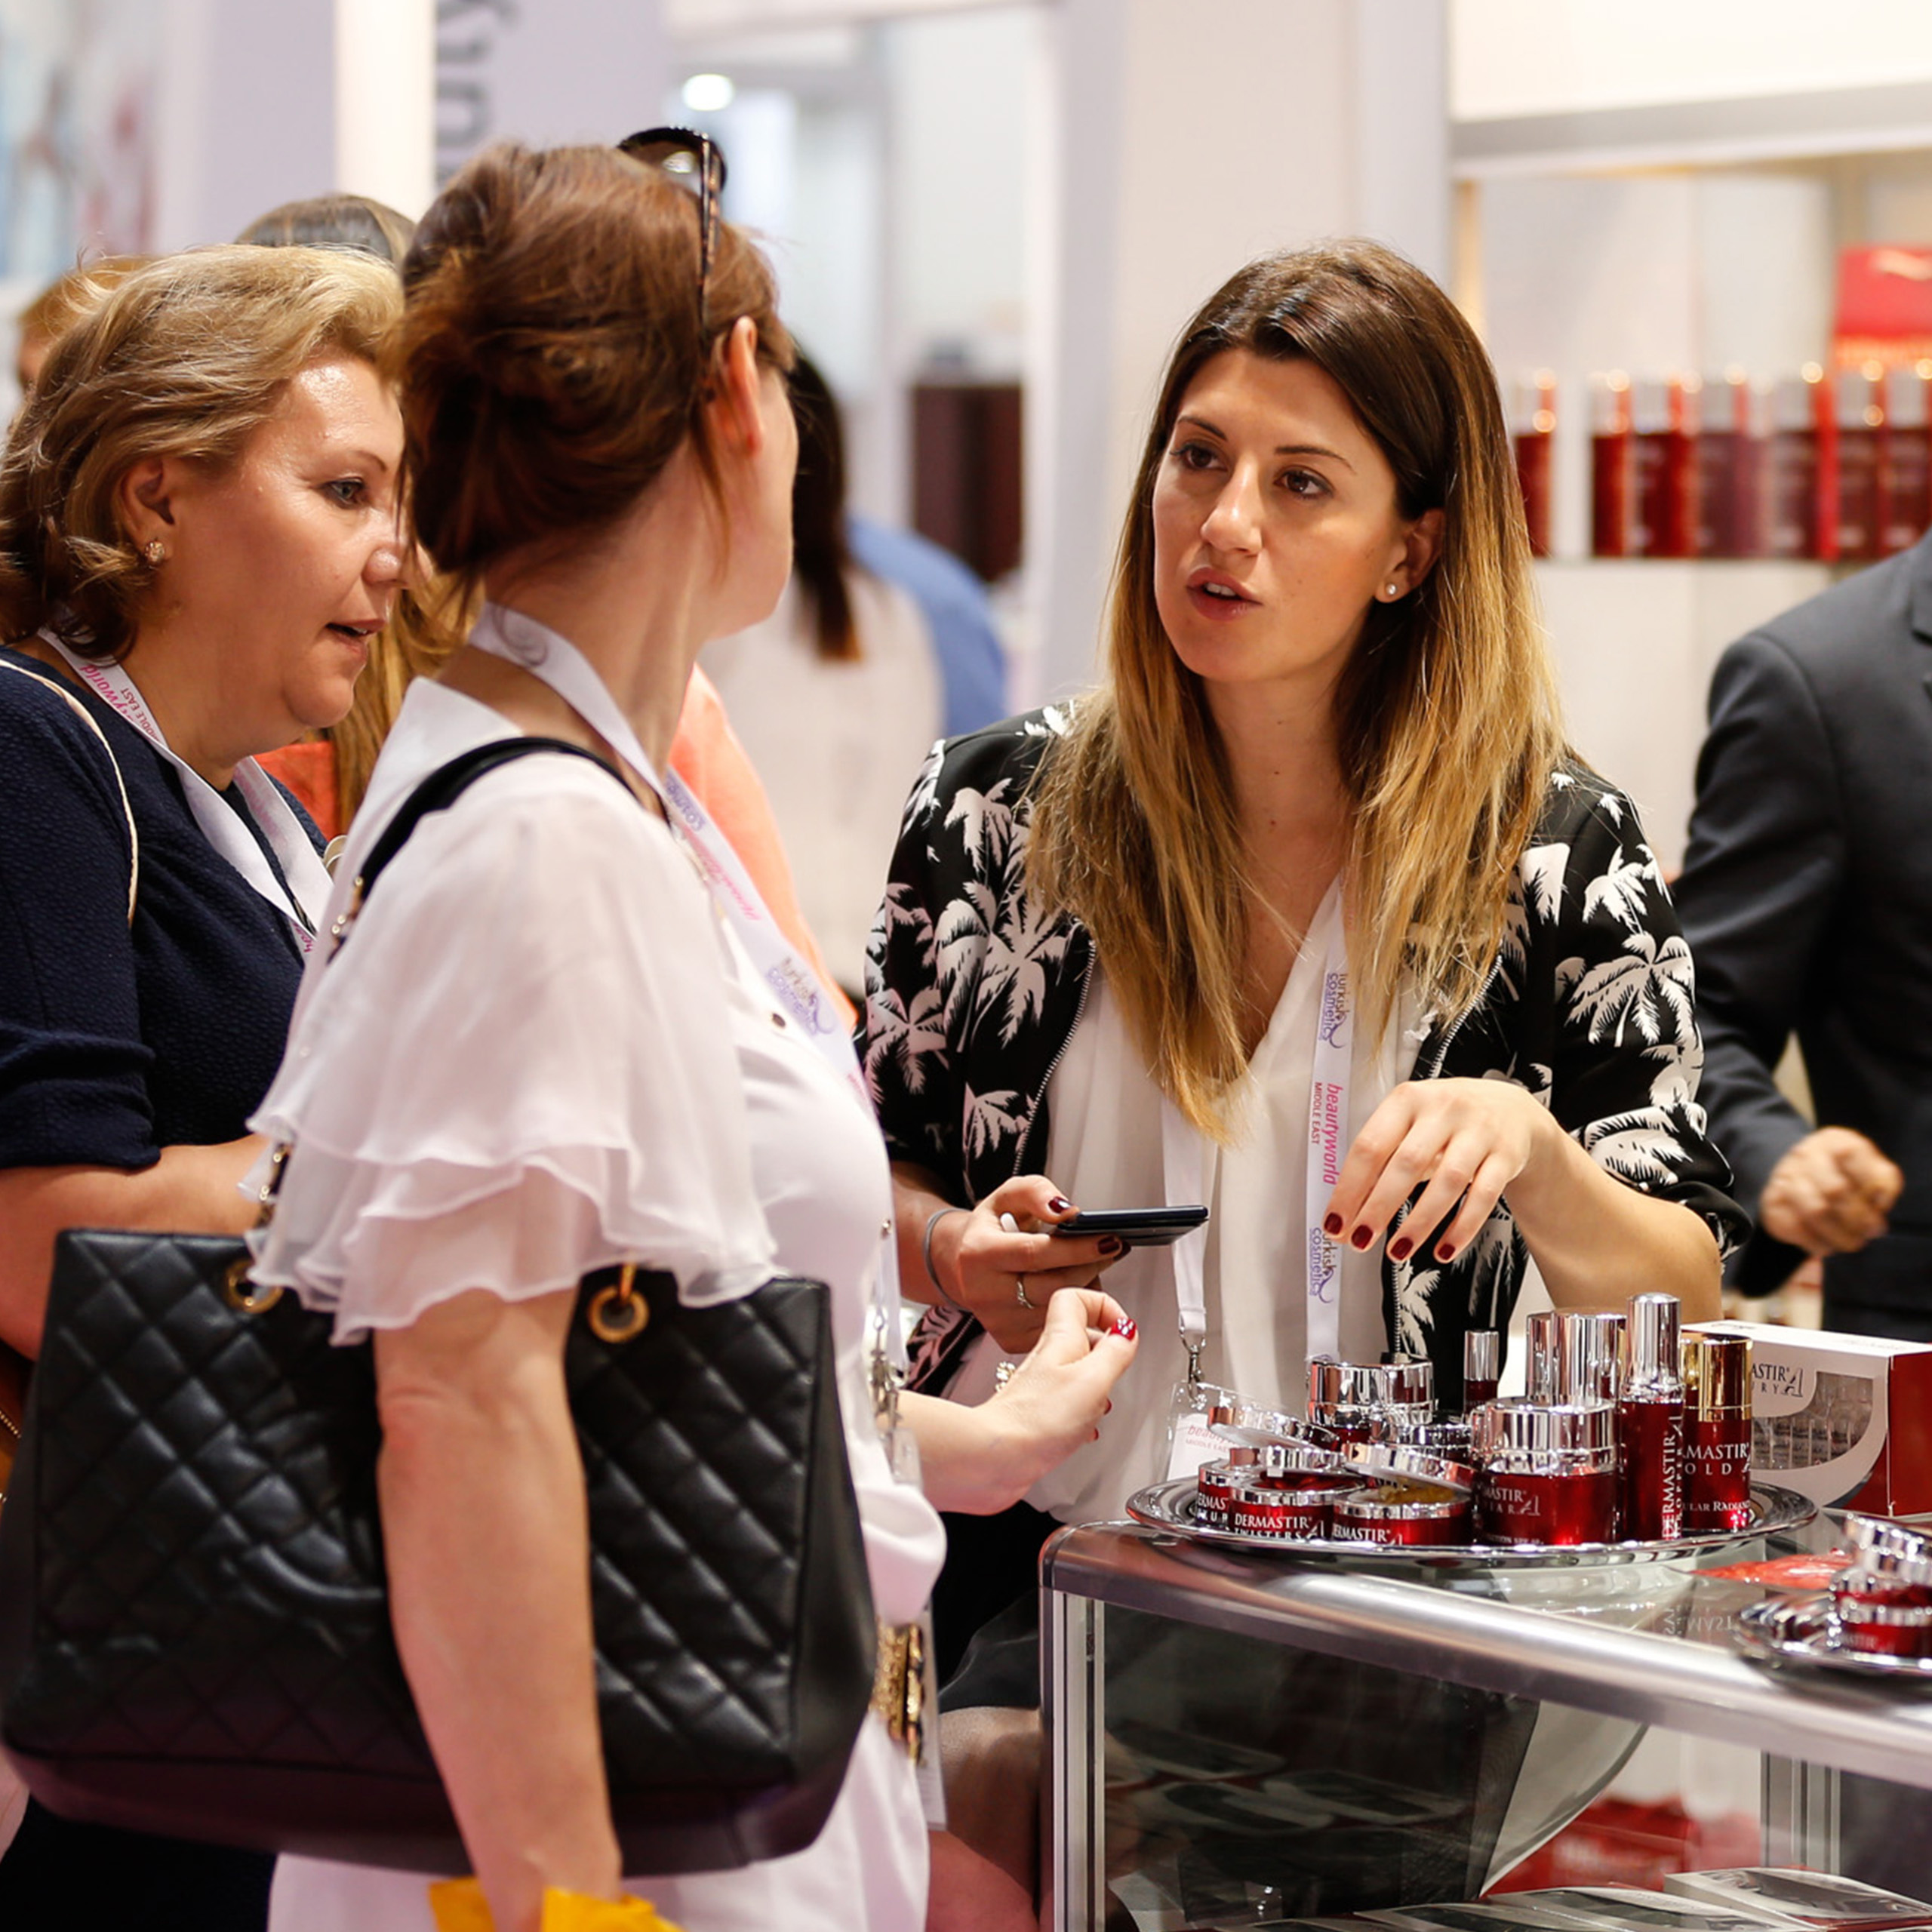 MEA overtakes Latin America as world's fastest-growing beauty market